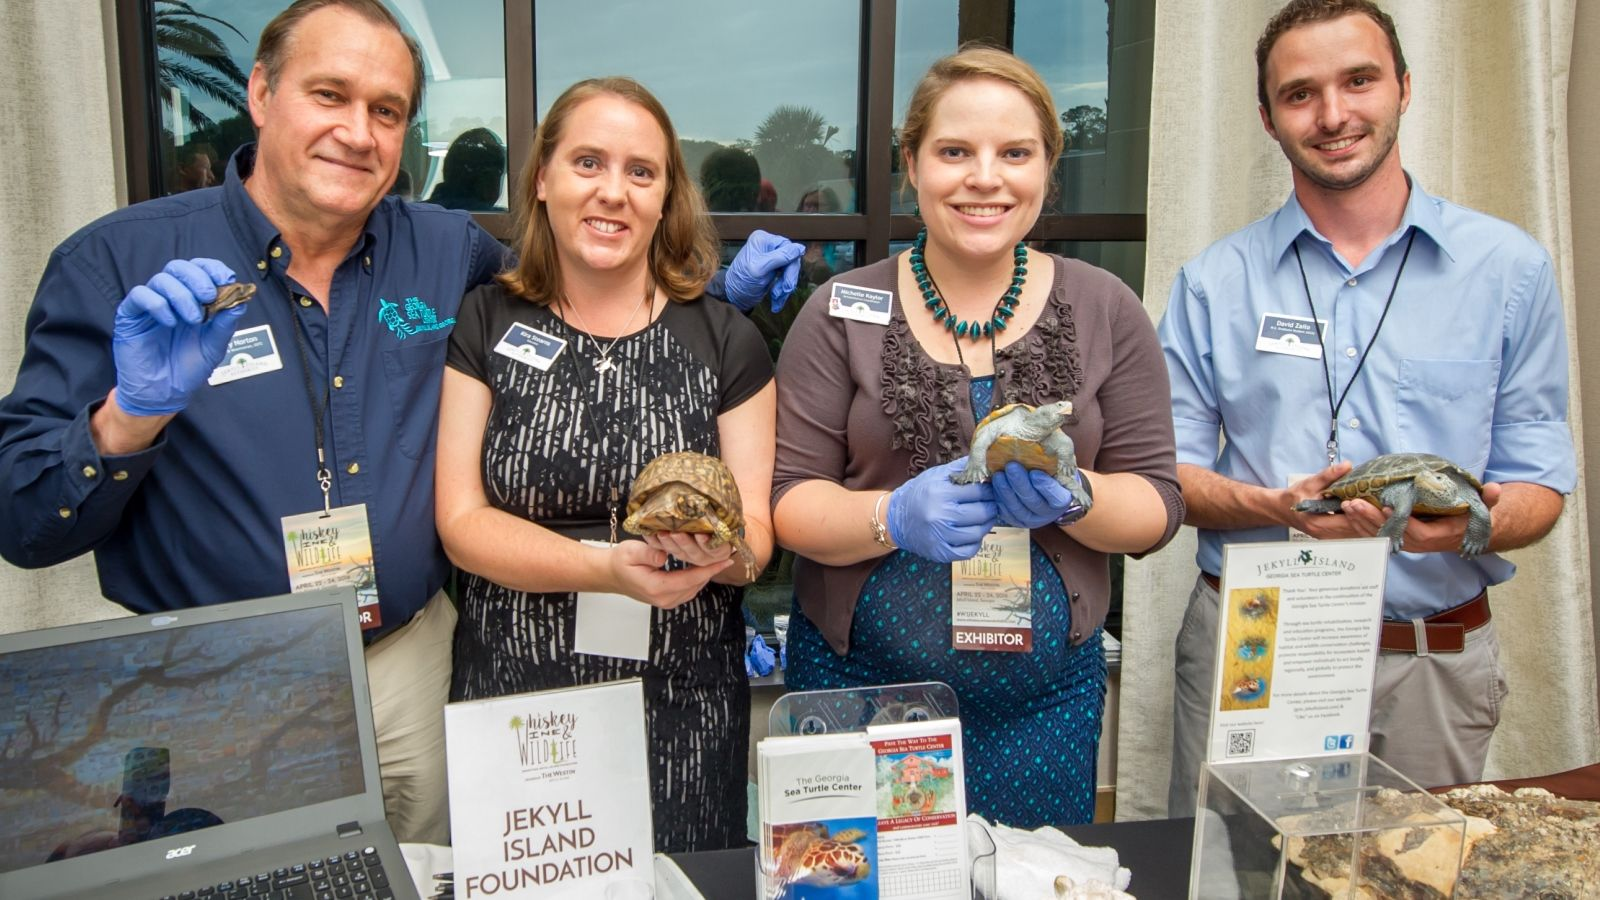 Whiskey, Wine & Wildlife - Jekyll Island Foundation